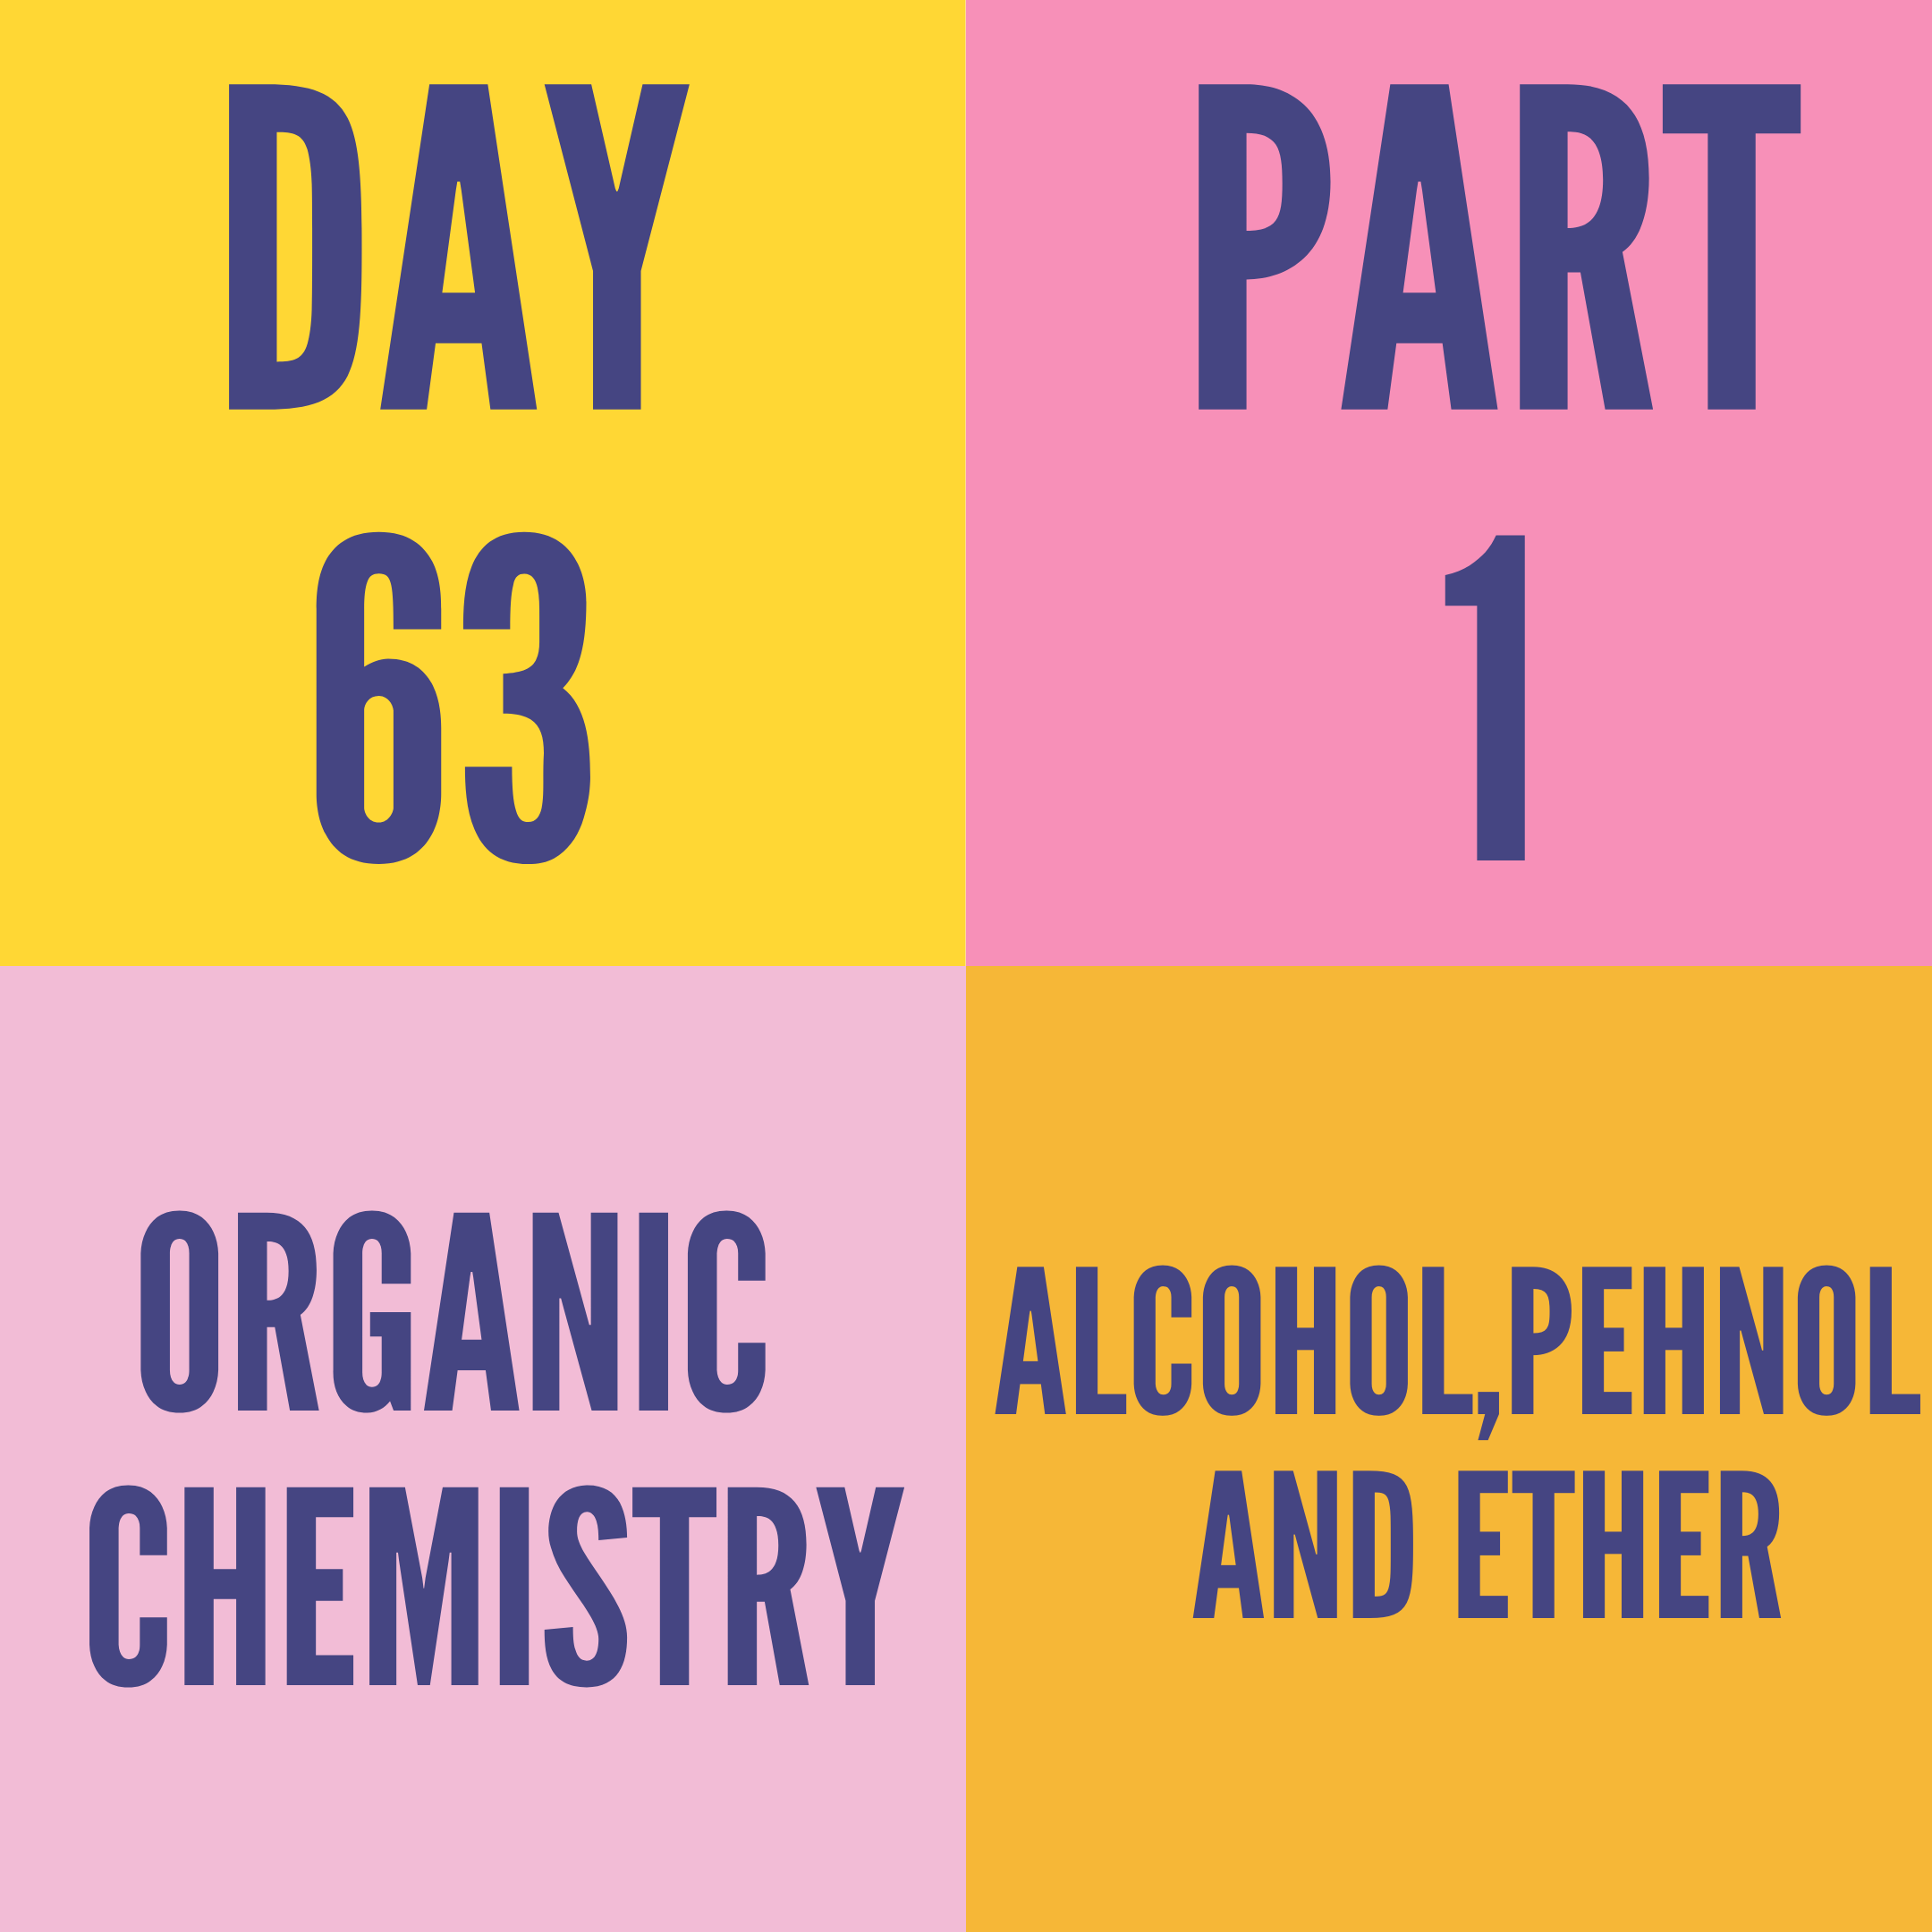 DAY-63 PART-1 ALCOH0L,PEHNOL AND ETHER